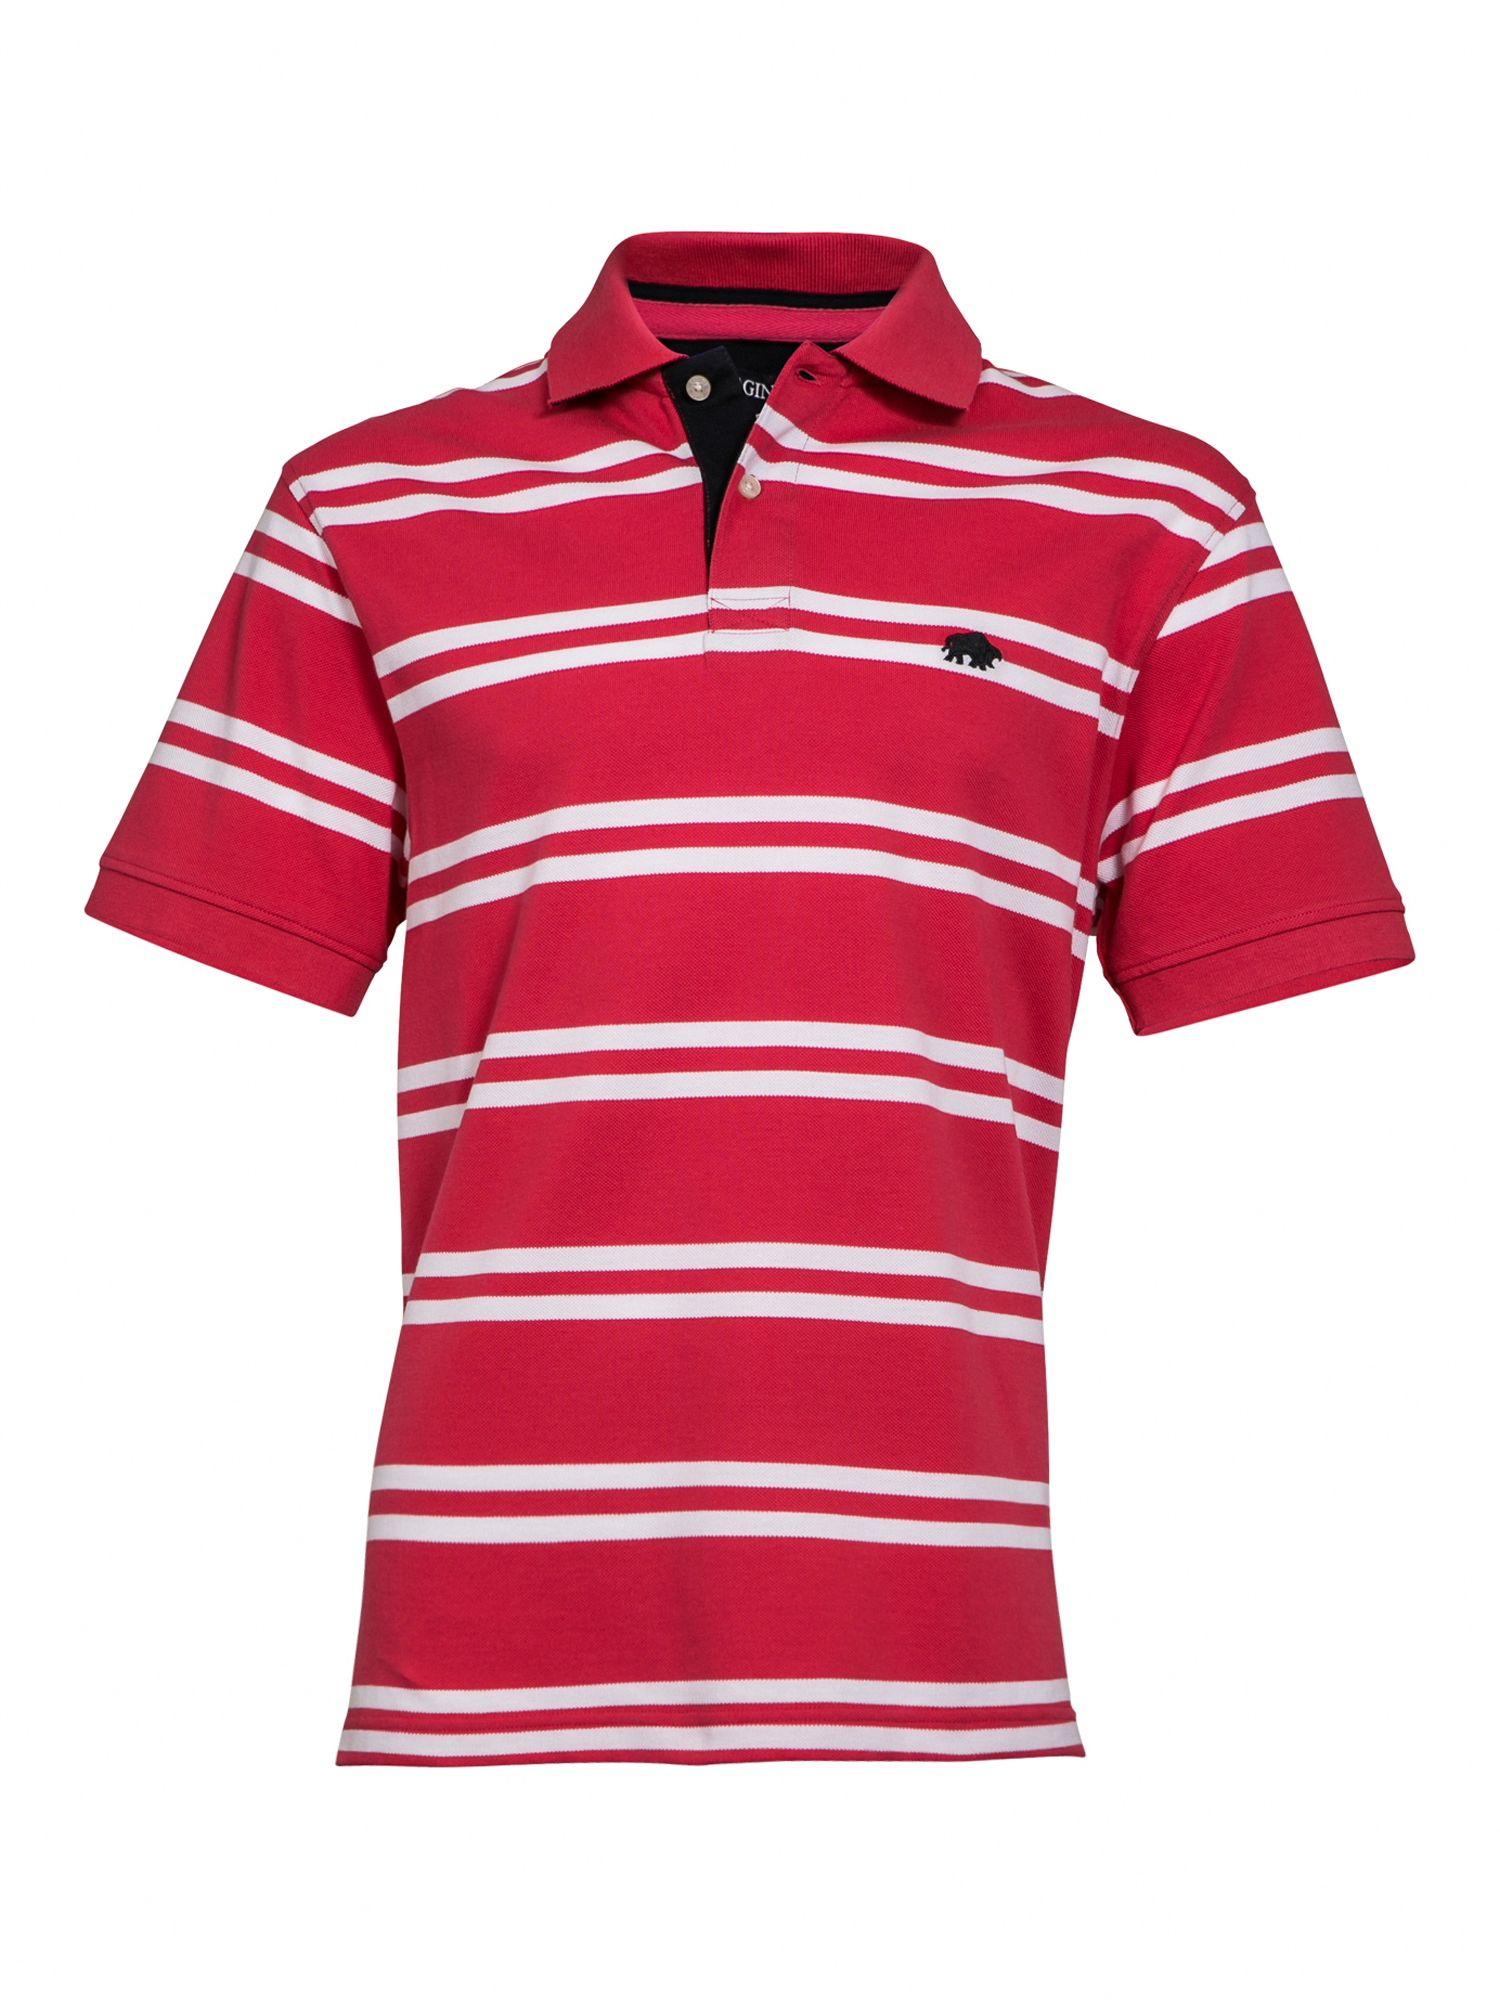 Big and Tall Double stripe polo shirt